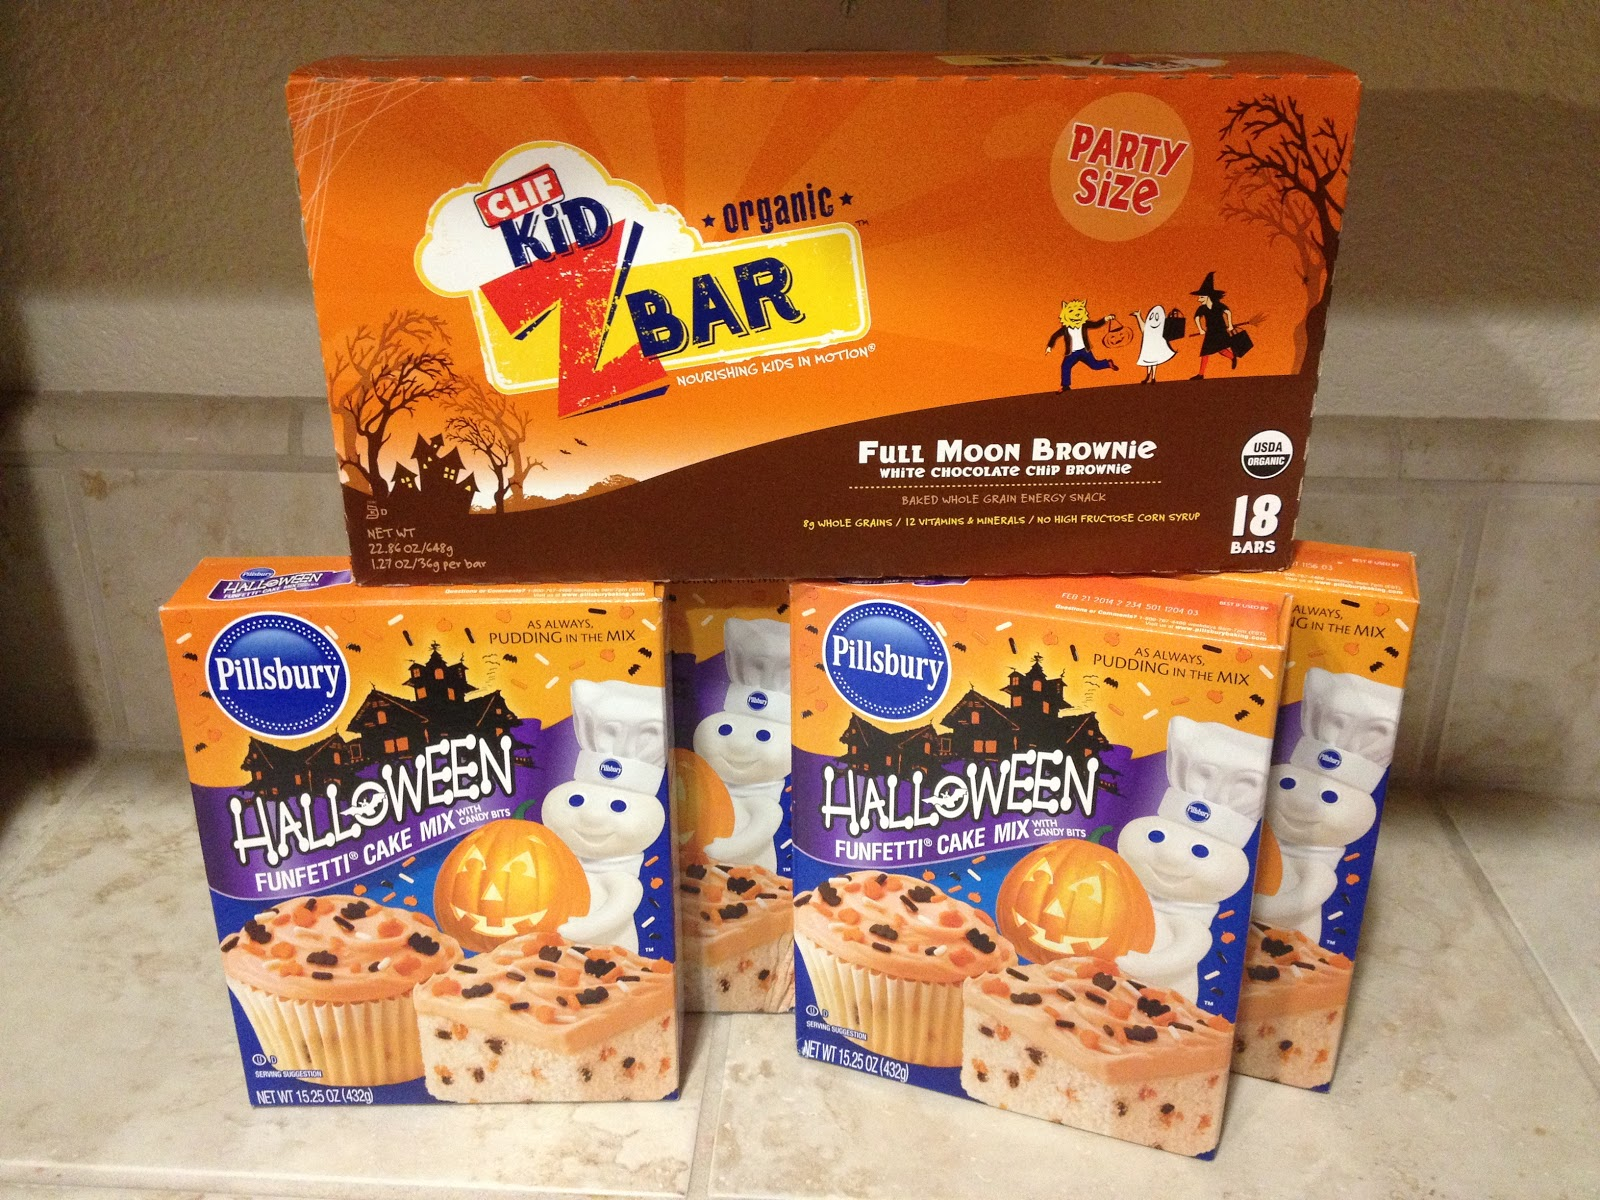 i grabbed an 18 count box of kidz clif bars for just 4 that works out to be just 020 per bar i also thought the pillsbury halloween funfetti cake